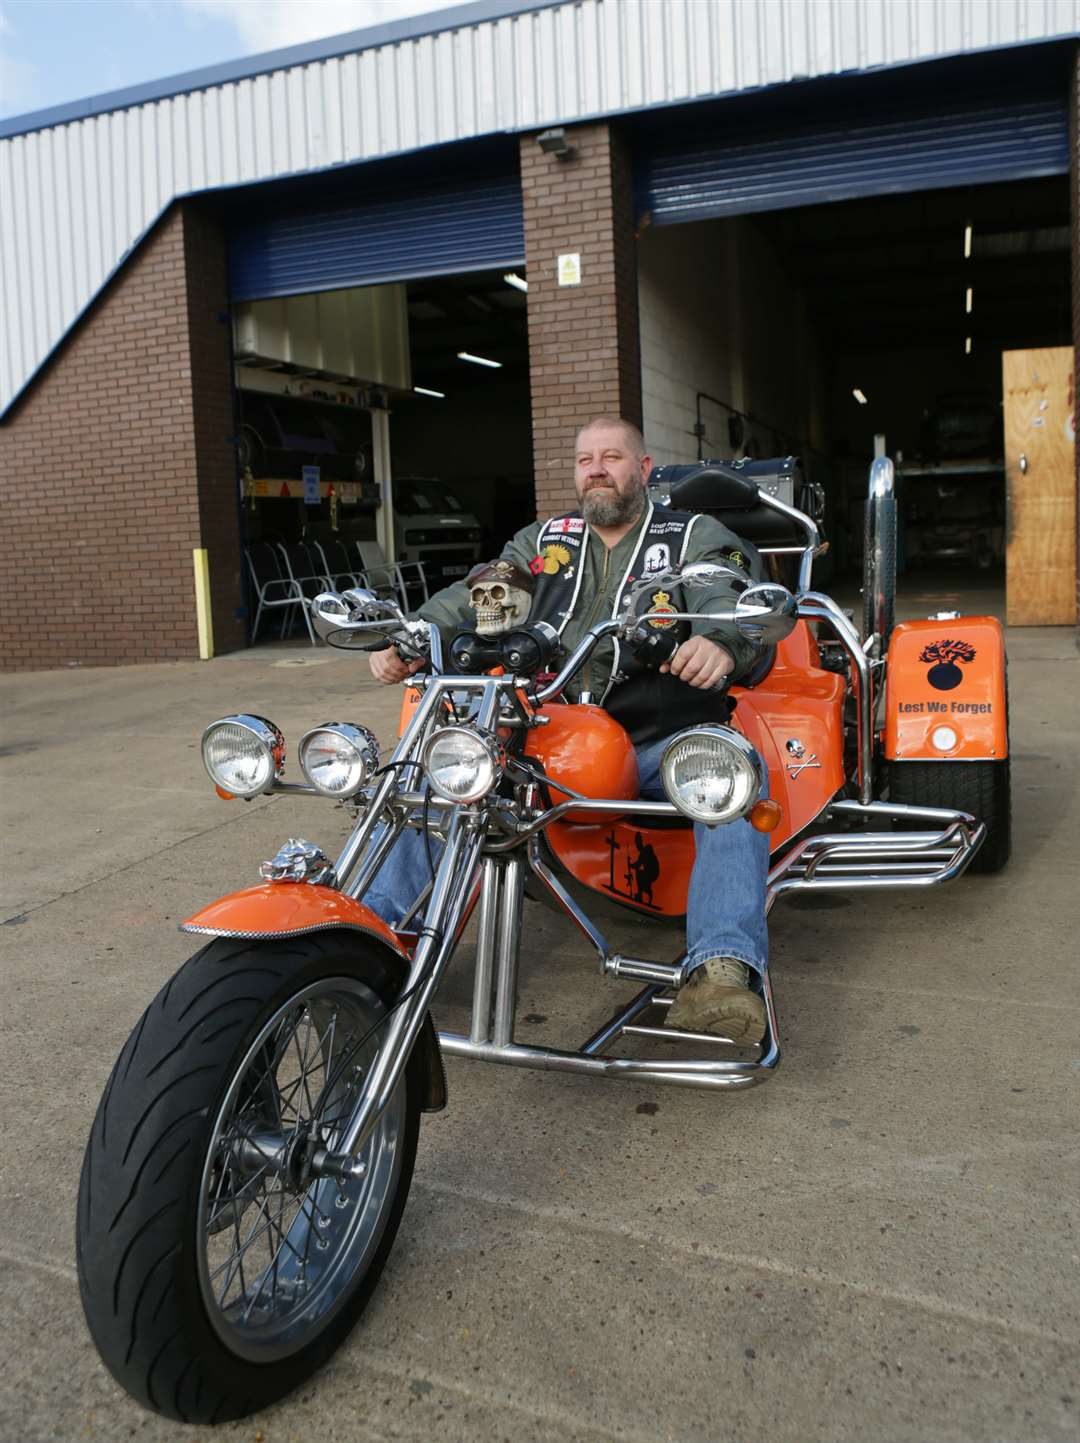 Dean Cumberpatch on his Rewaco VW trike outside Classic Motors Ltd, on Newark Industrial Estate, which ensured the trike was roadworthy for the trip to the National Memorial Arboretum